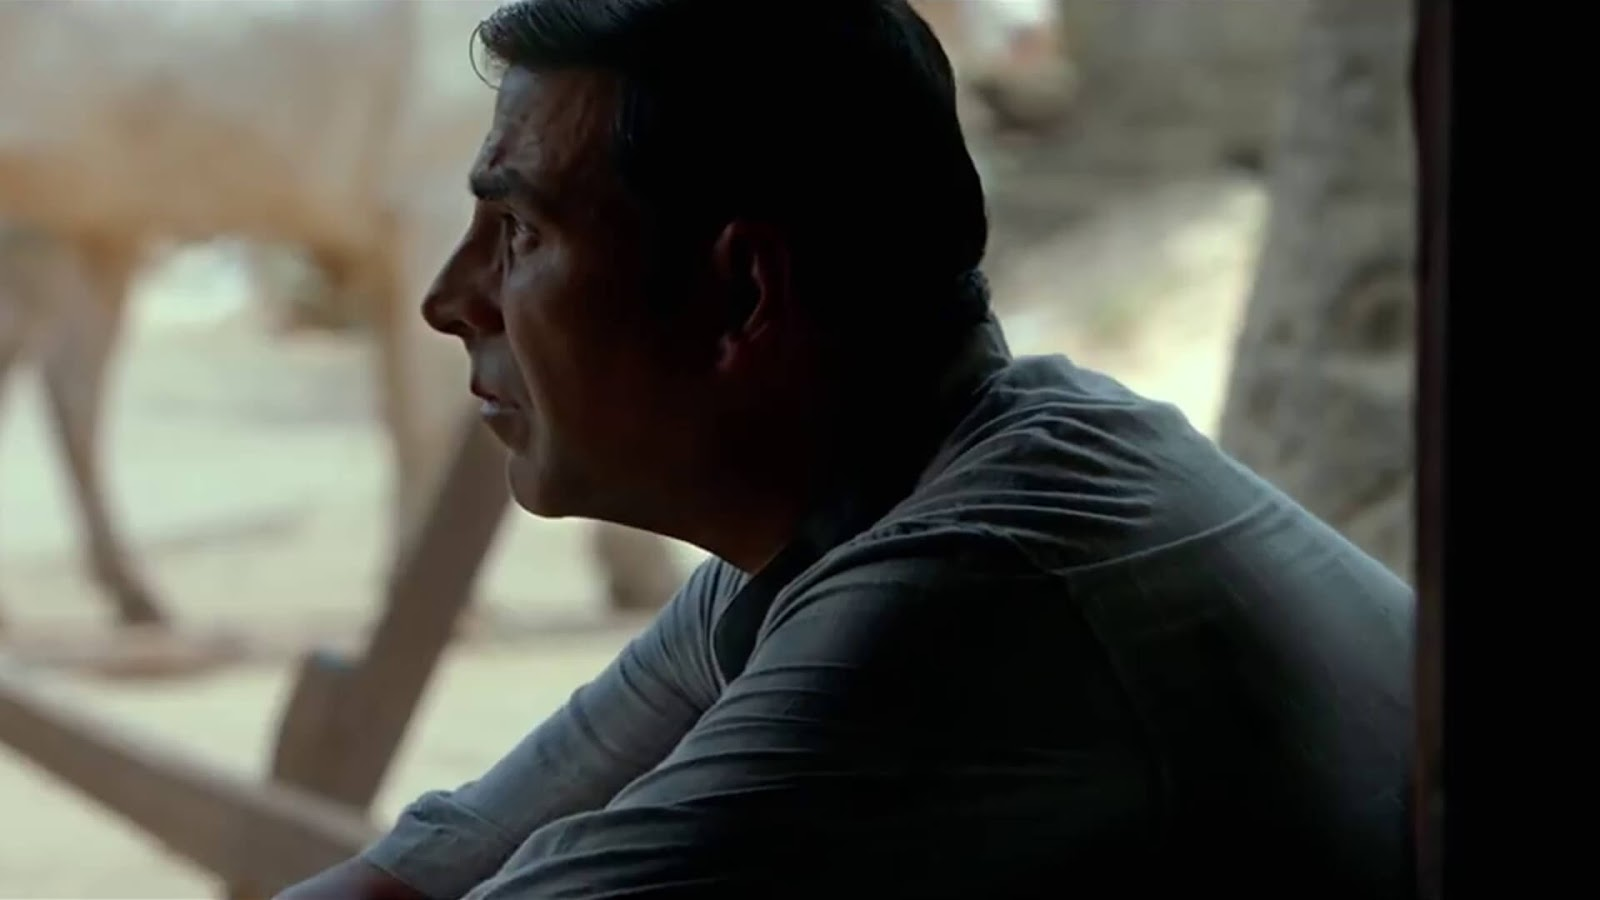 padman movie hd wallpapers download free 1080p